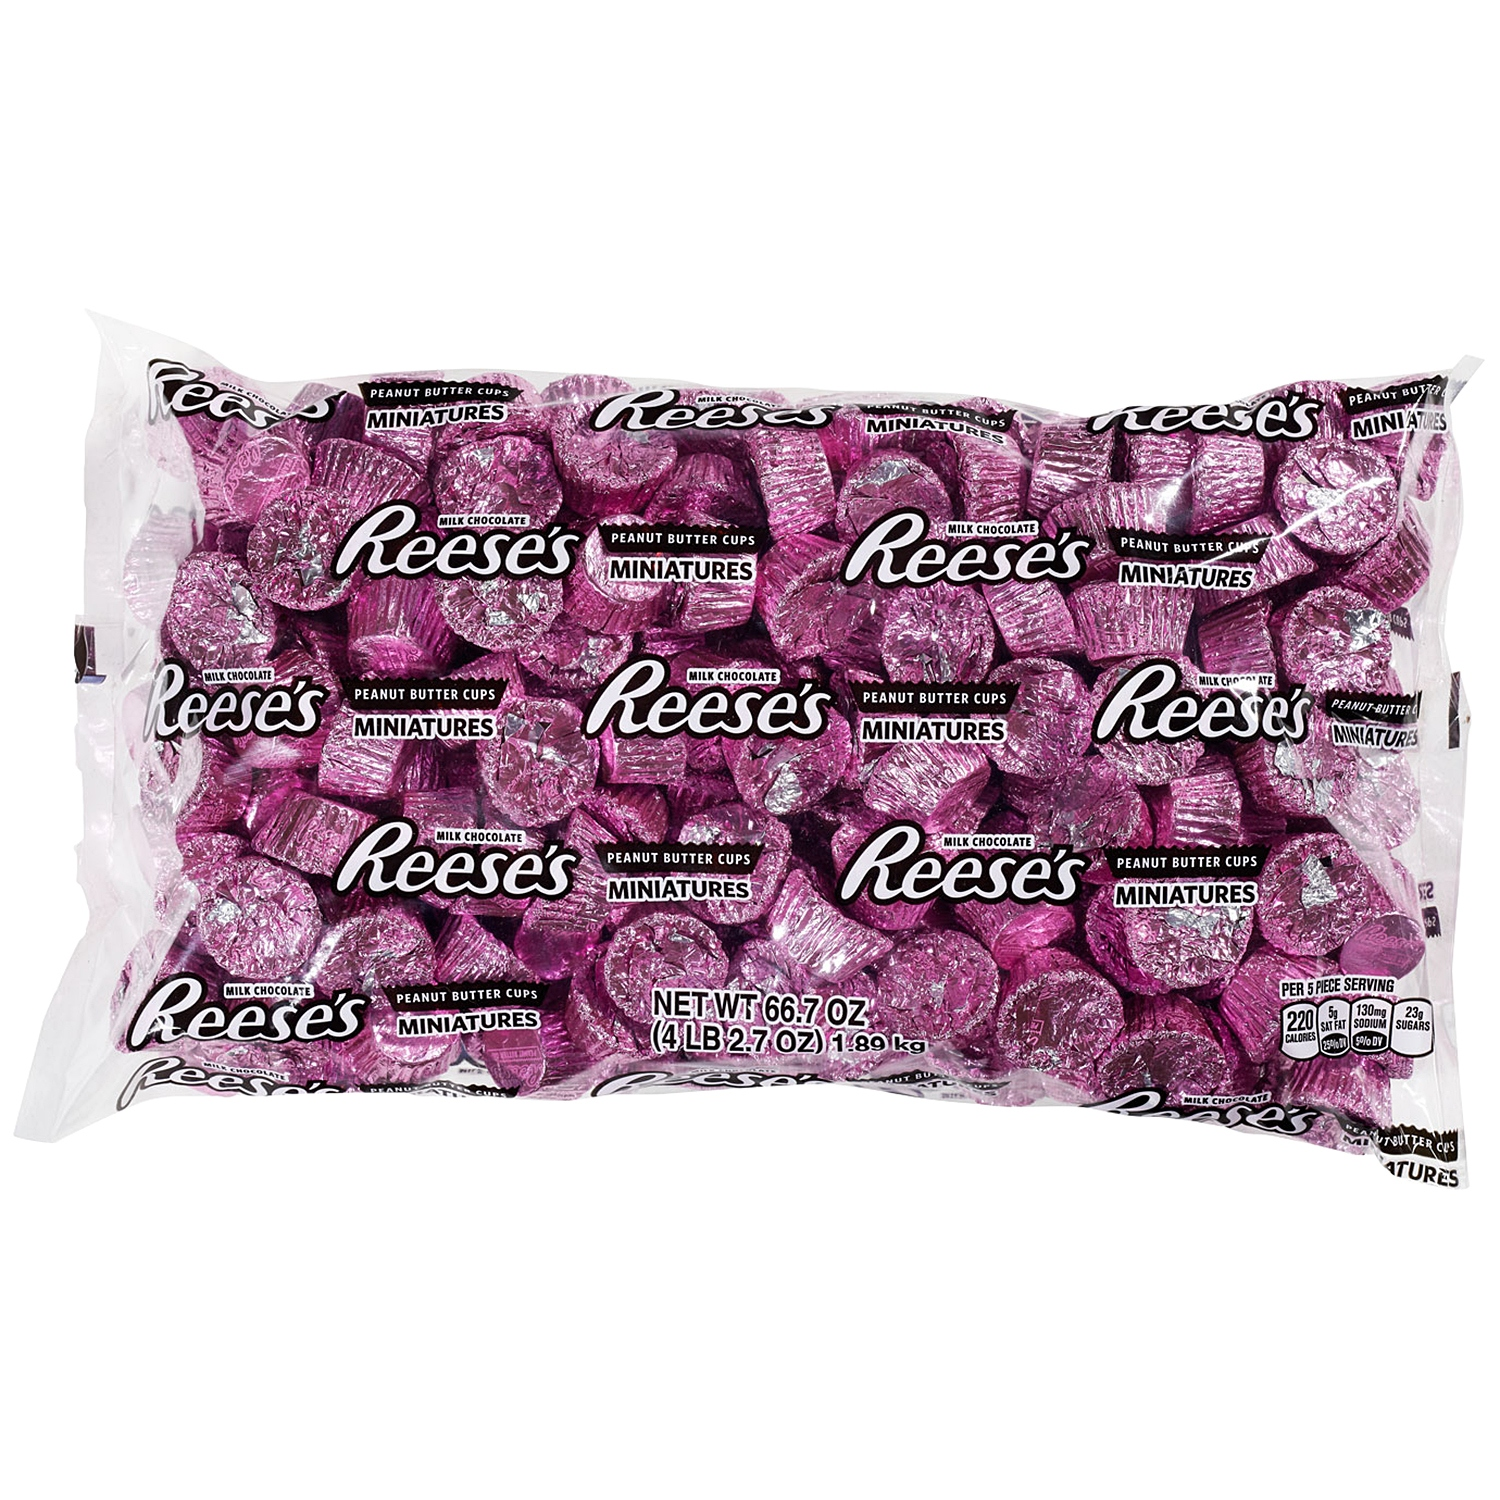 Reese's, Peanut Butter Cups Chocolate Candy Miniatures, Pink Foil, 66.7 Oz - Online Only